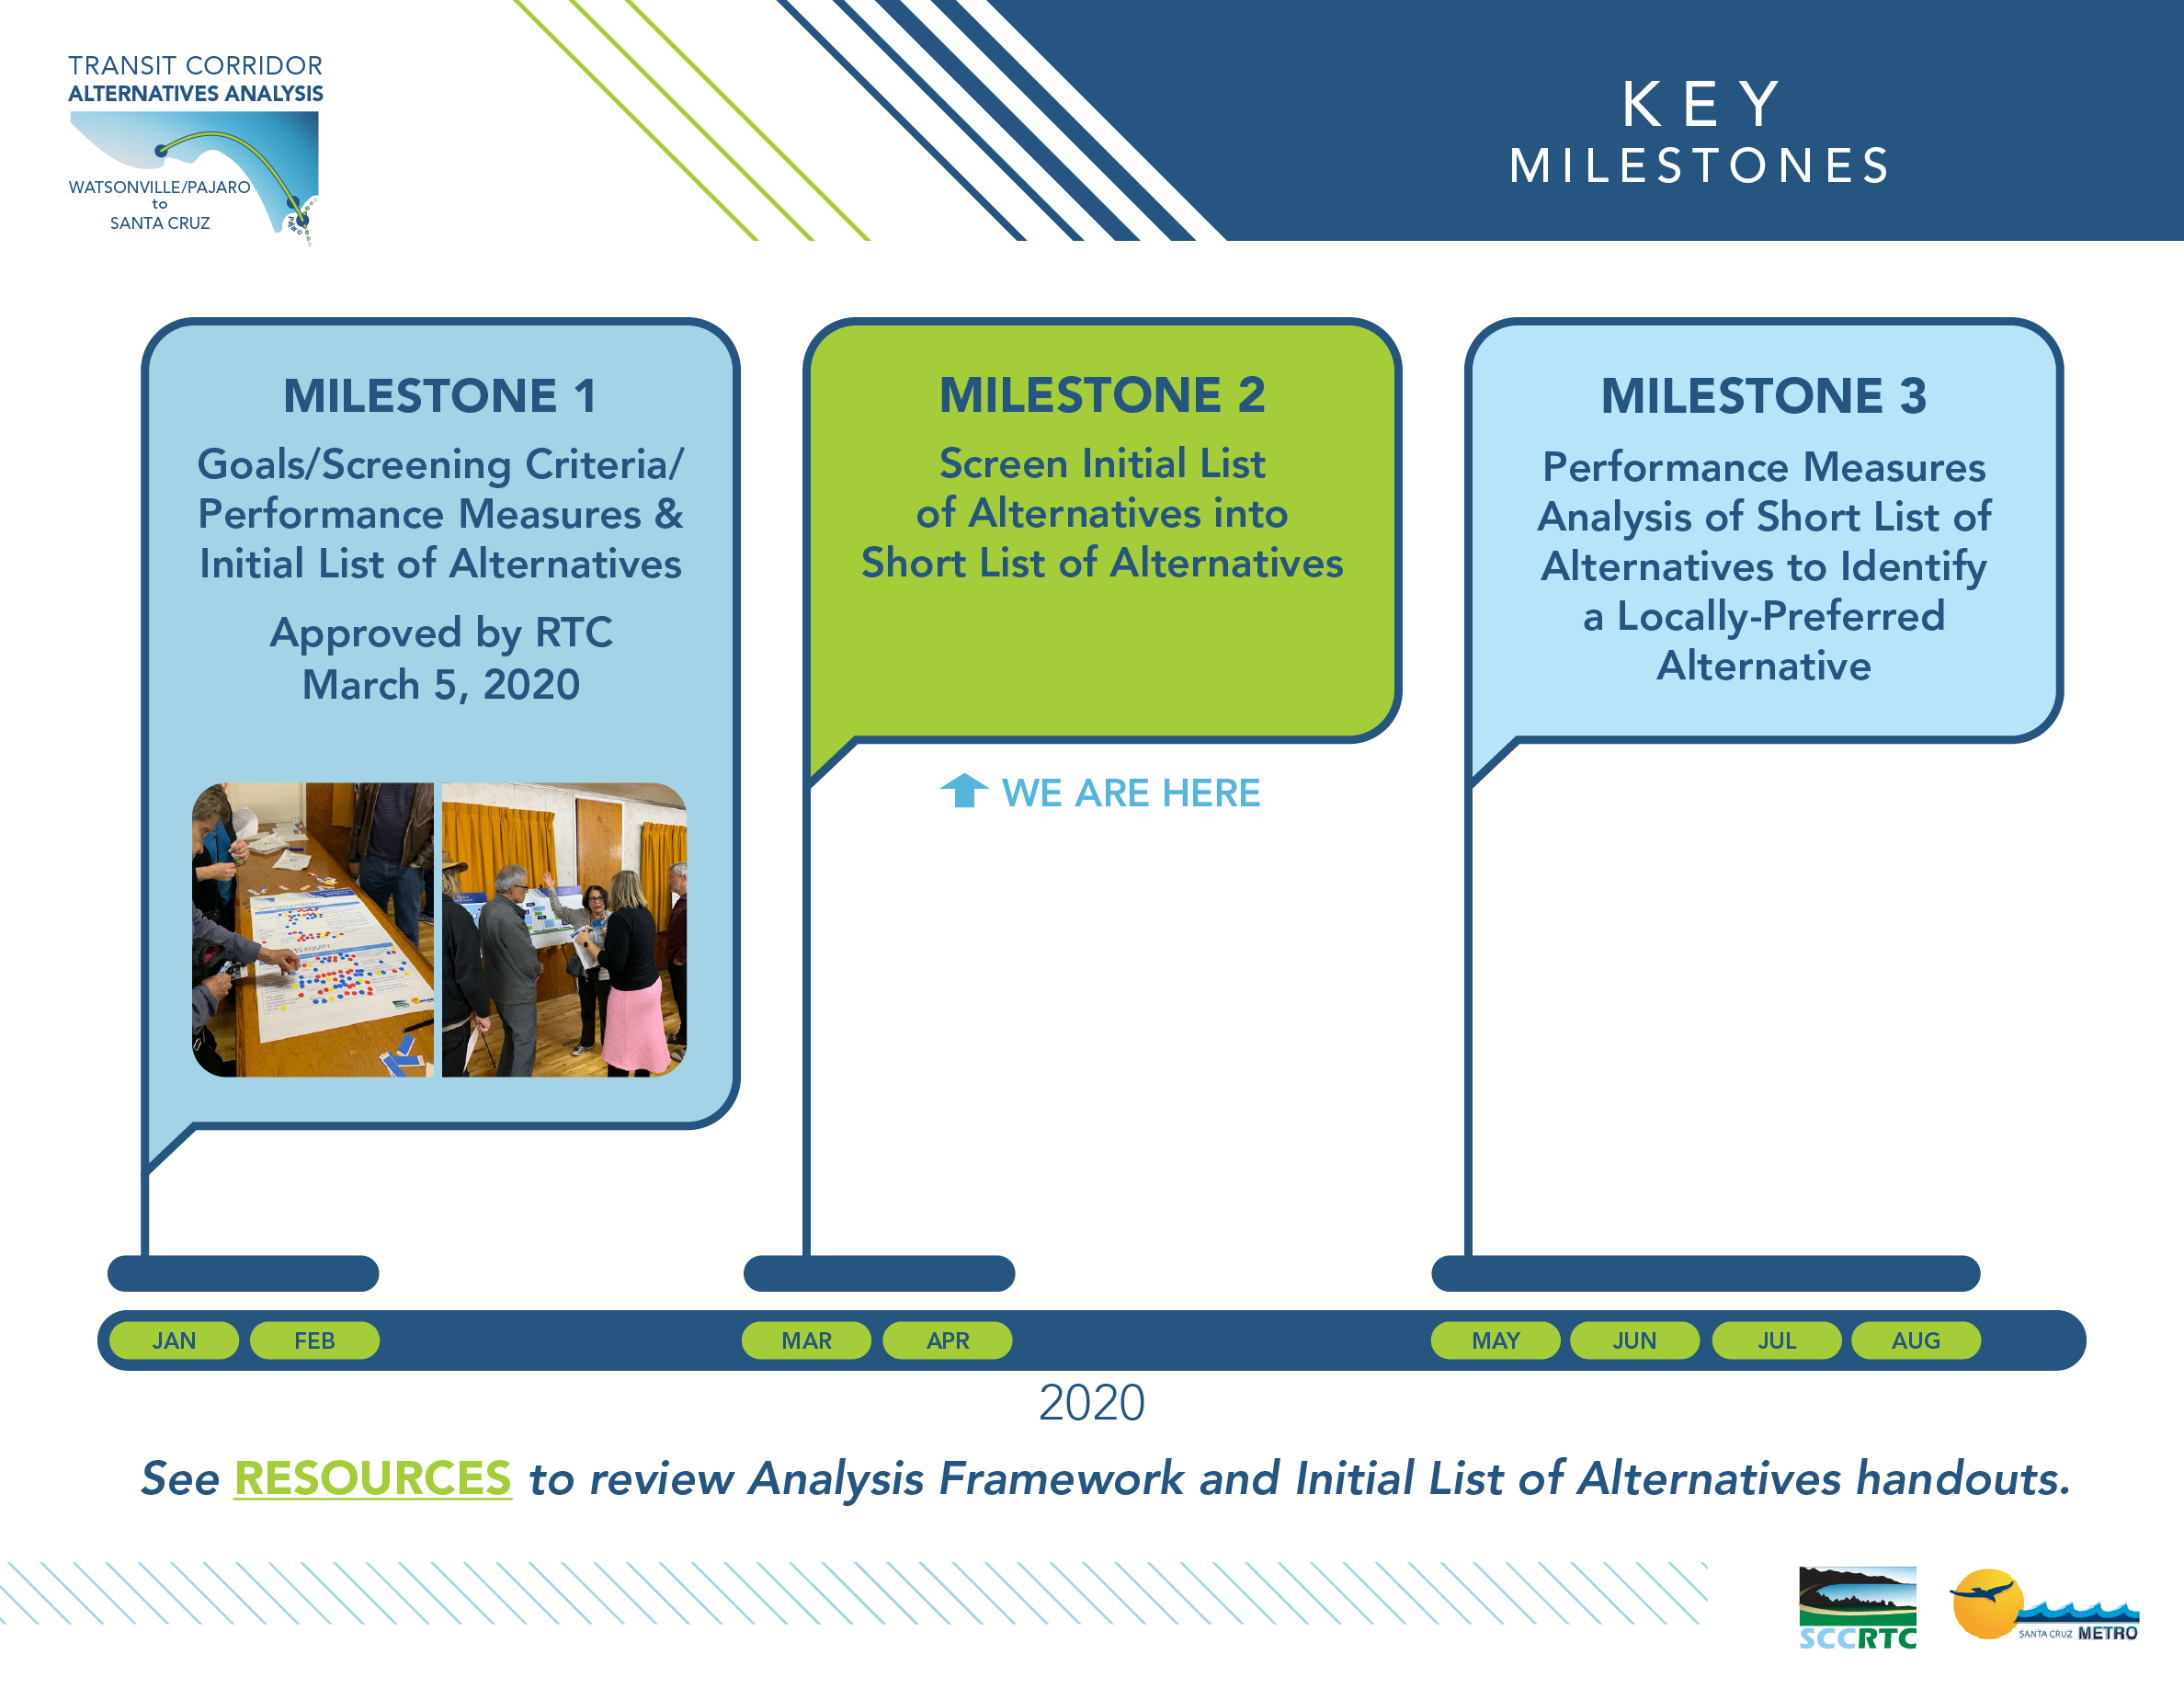 Board 2: Key Milestones MILESTONE 1 Goals/Screening Criteria/ Performance Measures & Initial List of Alternatives Approved by RTC March 5, 2020 MILESTONE 2 Screen Initial List of Alternatives into Short List of Alternatives MILESTONE 3 Performance Measures Analysis of Short List of Alternatives to identify a Locally-Preferred Alternative See RESOURCES to review Analysis Framework and Initial List of Alternatives handouts.